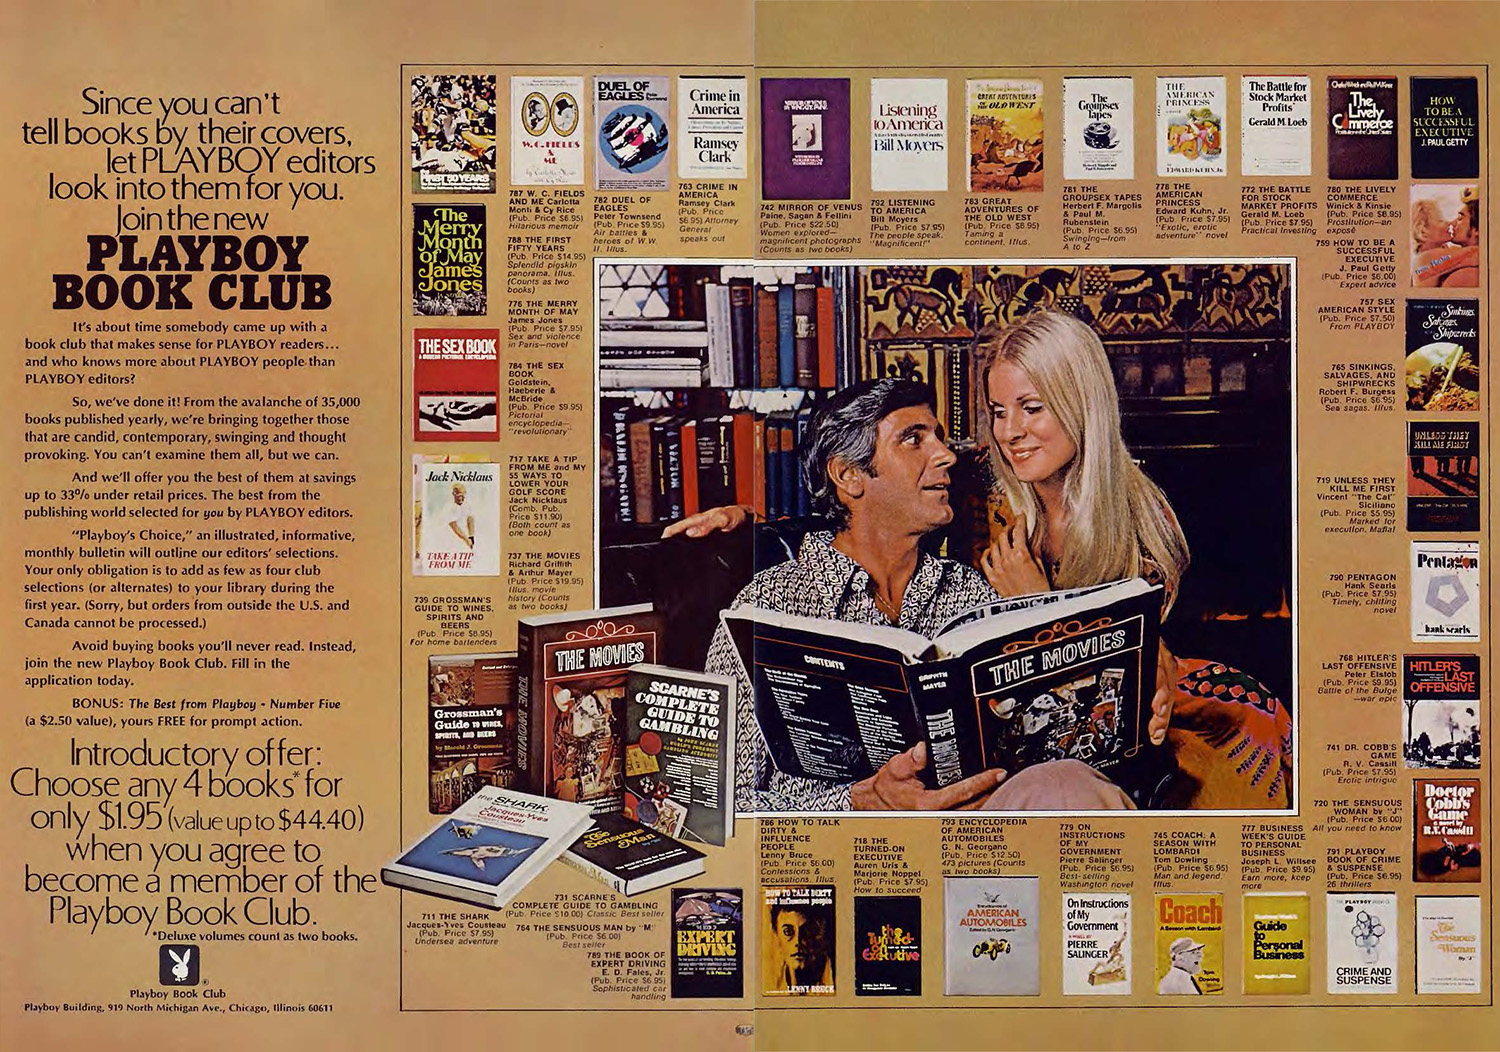 1971 Playboy book club